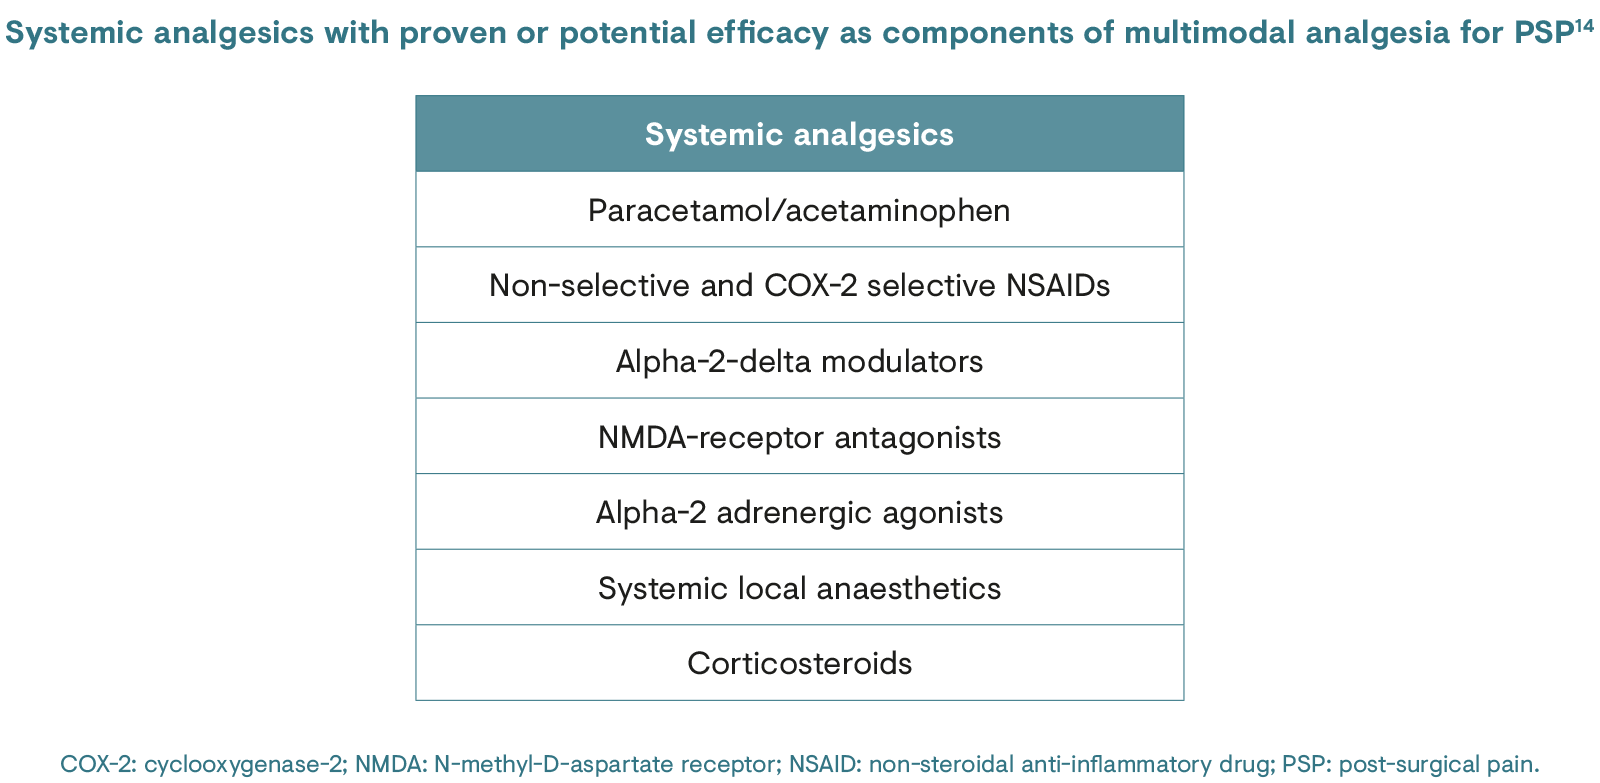 Systemic analgesics with proven or potential efficacy as components of multimodal analgesia for post surgical pain